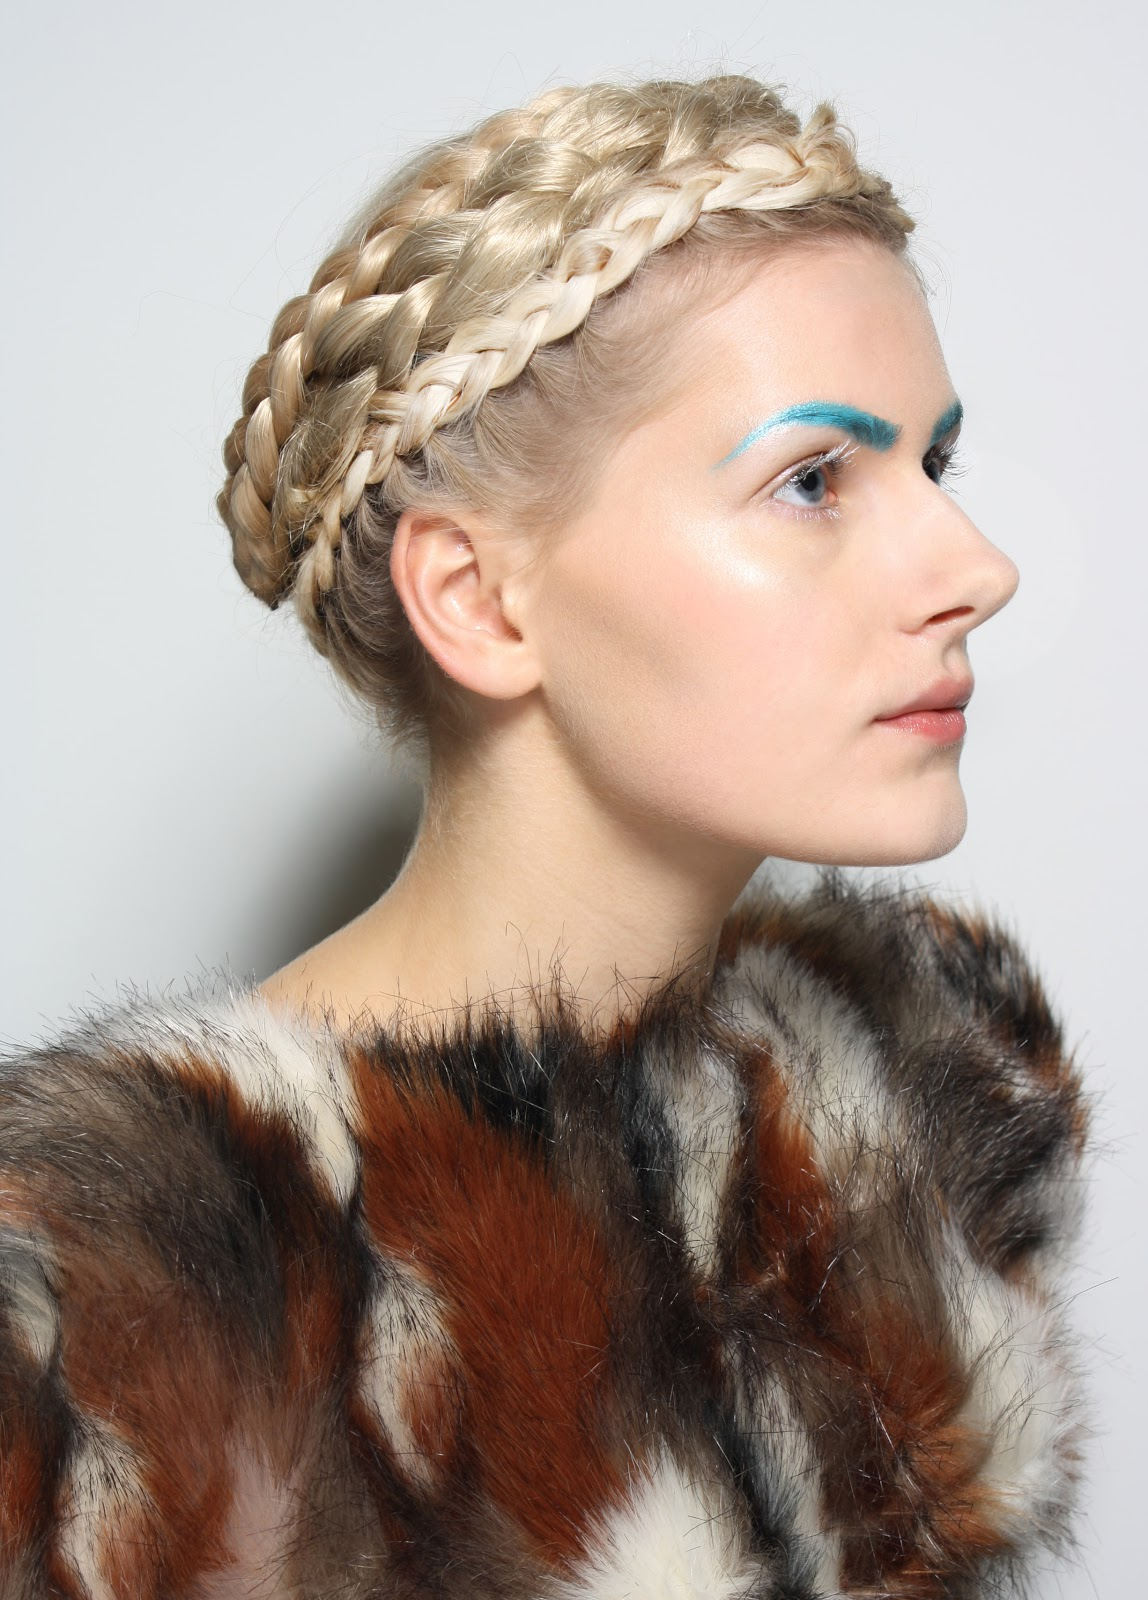 Wild kingdom catwalk final images - The catwalk hair salon ...